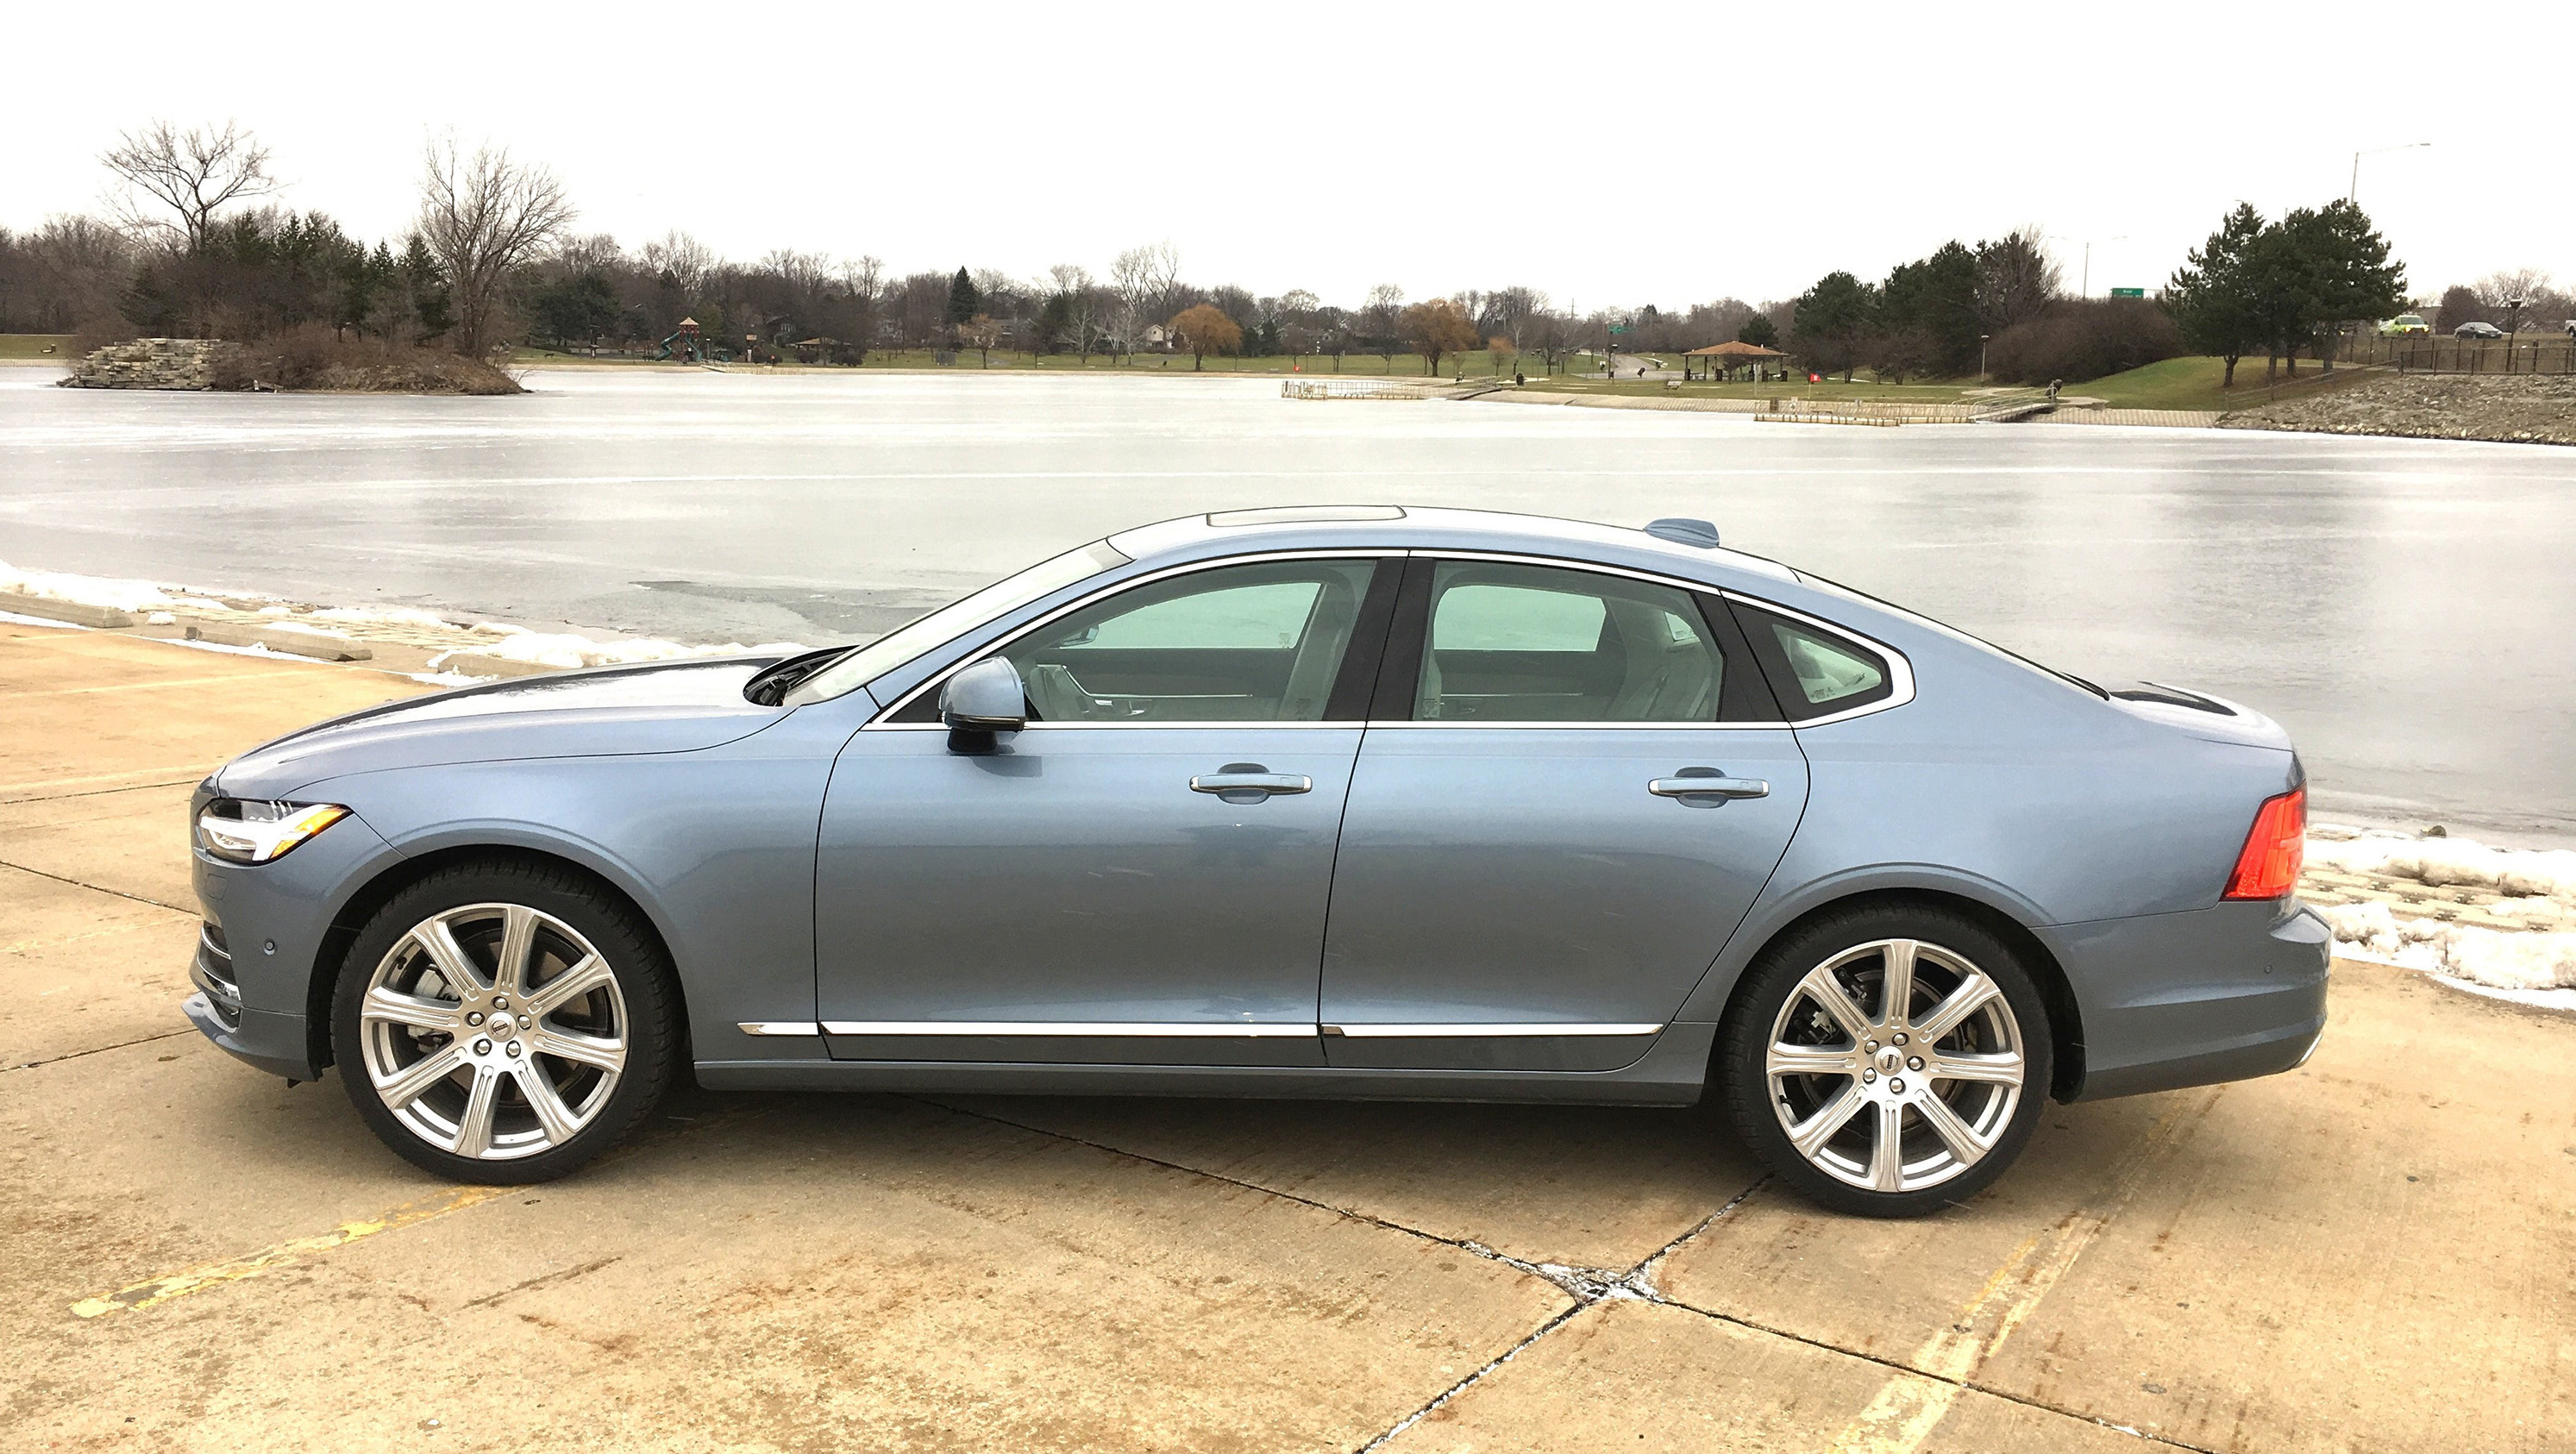 auto review 2017 volvo s90 t6 sedan wears elegance with simplicity hamodia jewish and israel news. Black Bedroom Furniture Sets. Home Design Ideas